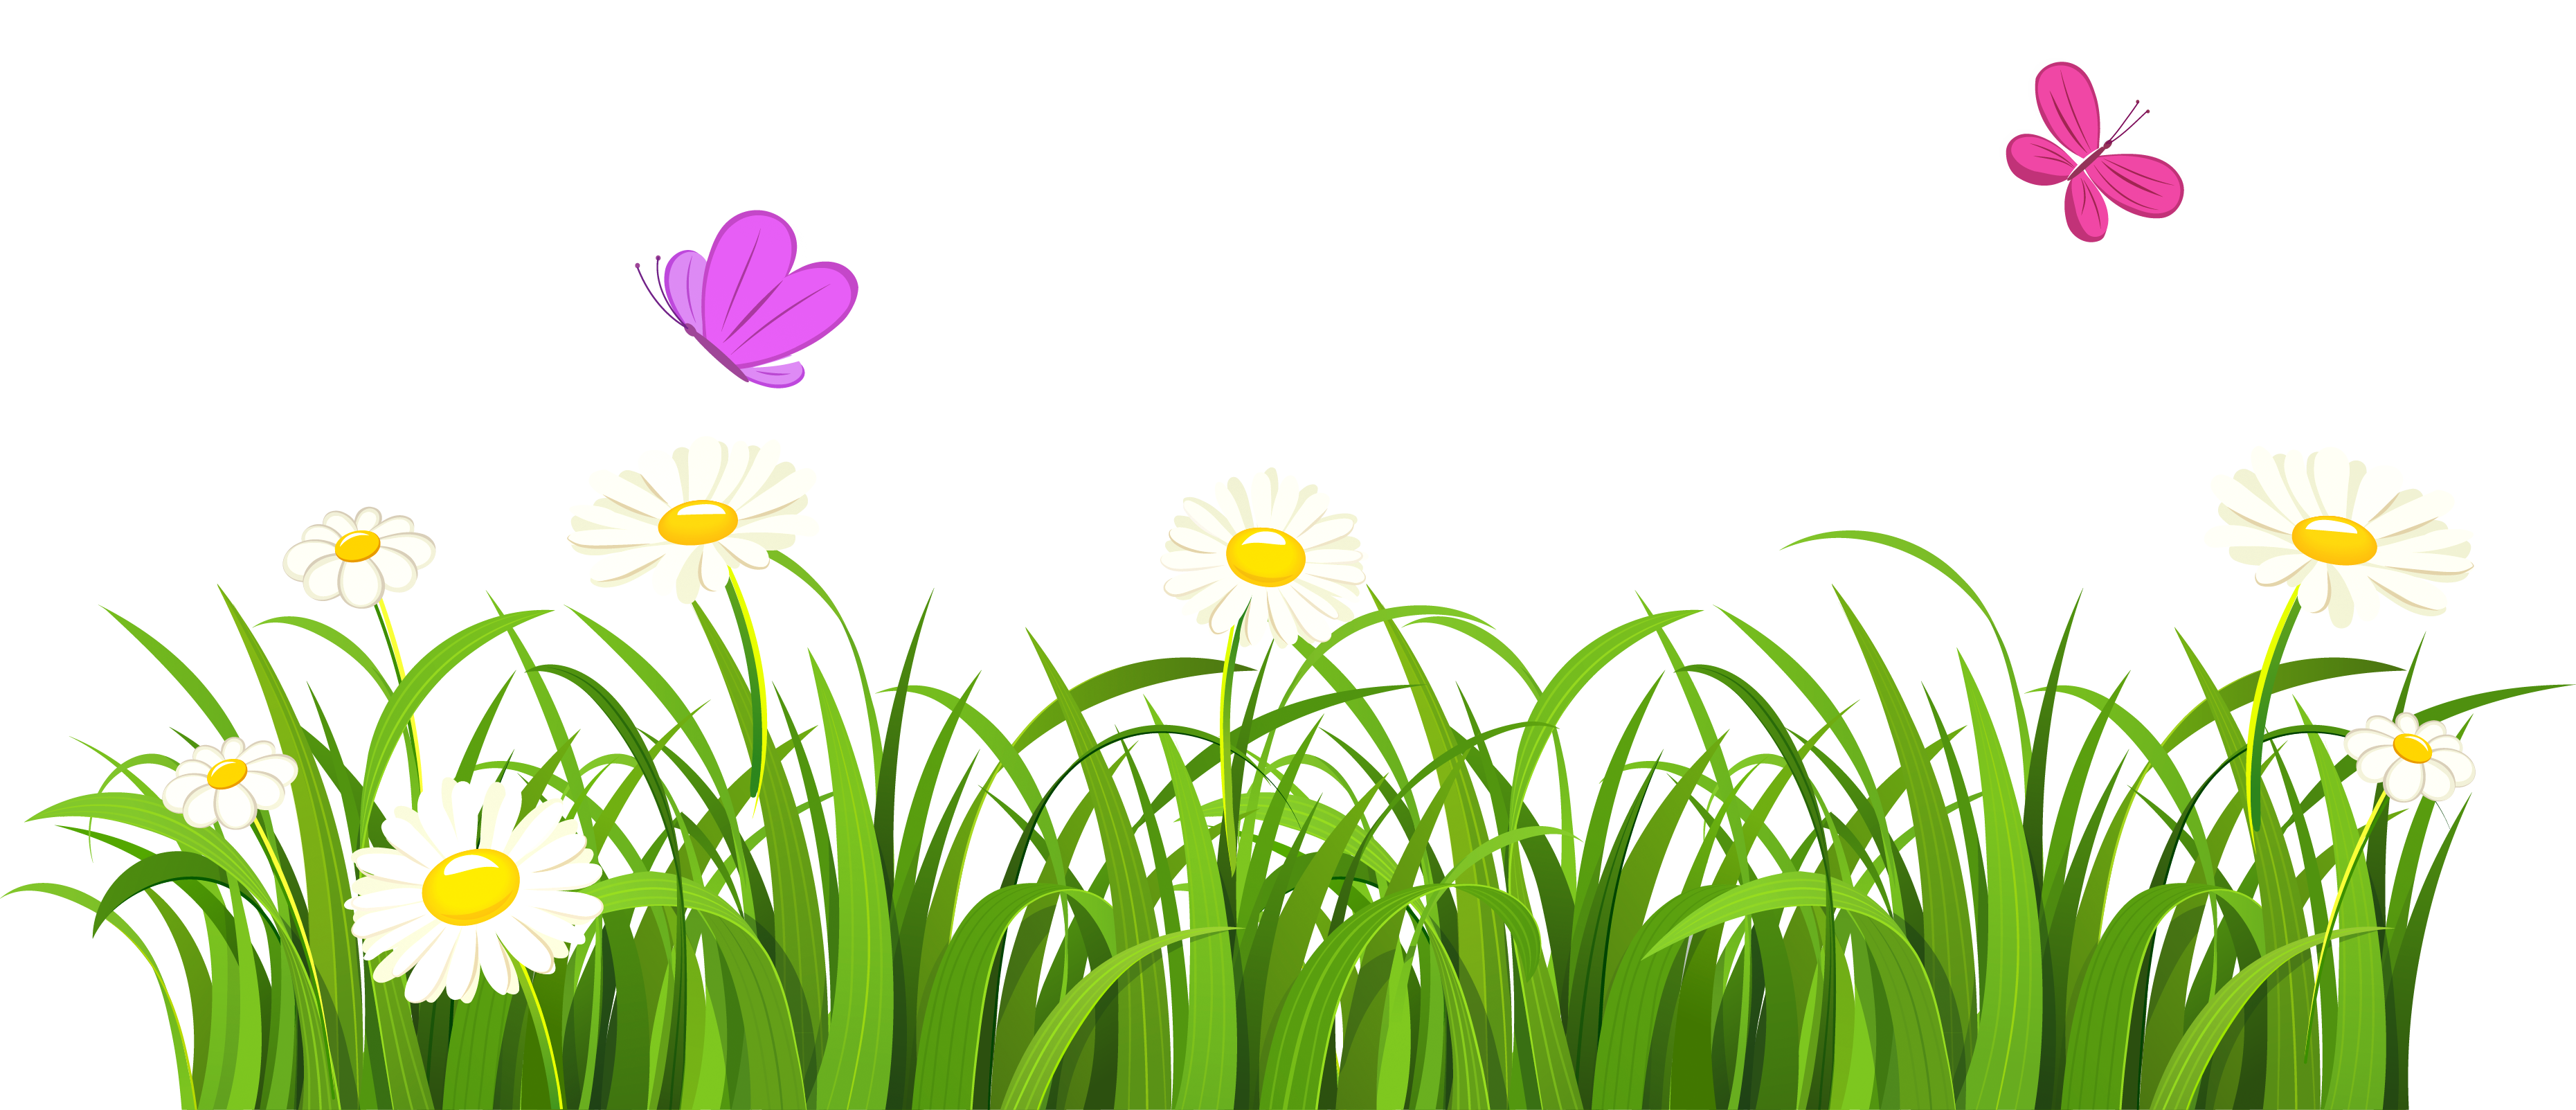 clipart stock And butterflies png gallery. Grass clipart cute